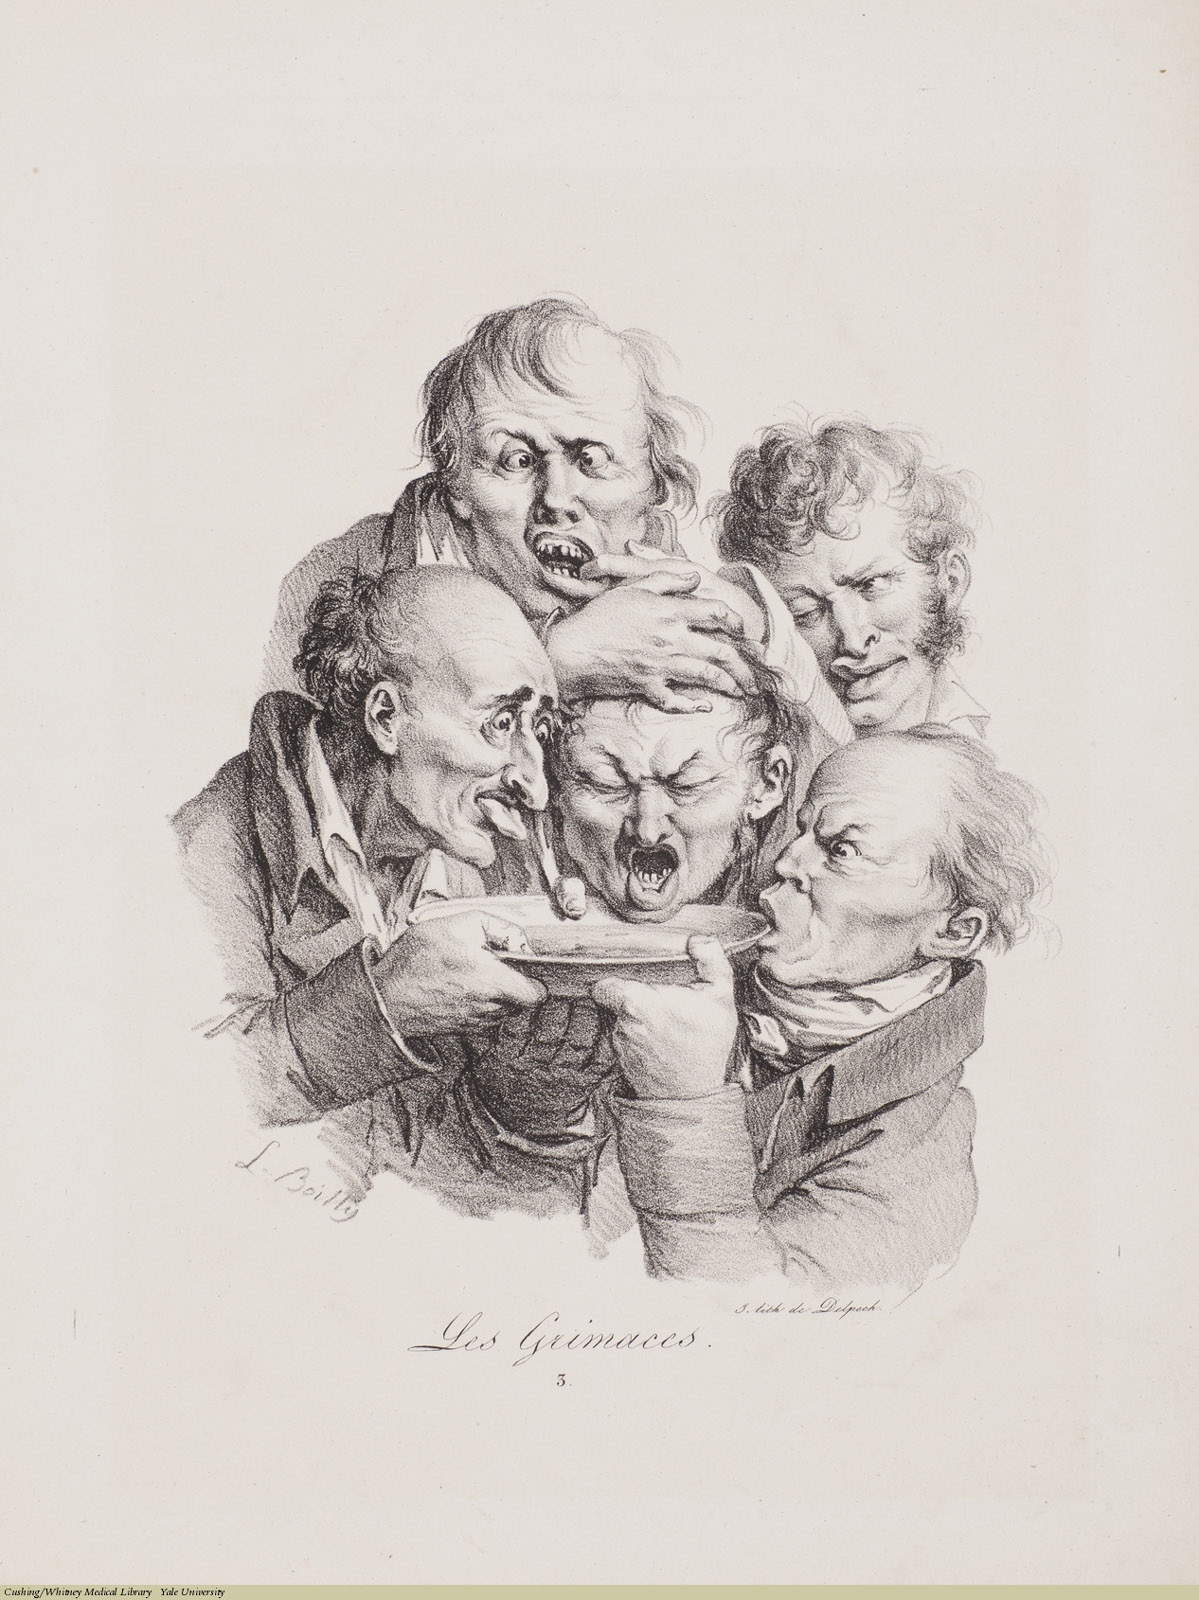 Les Grimaces 3, Louis-Léopold Boilly, Lithograph, 1823.